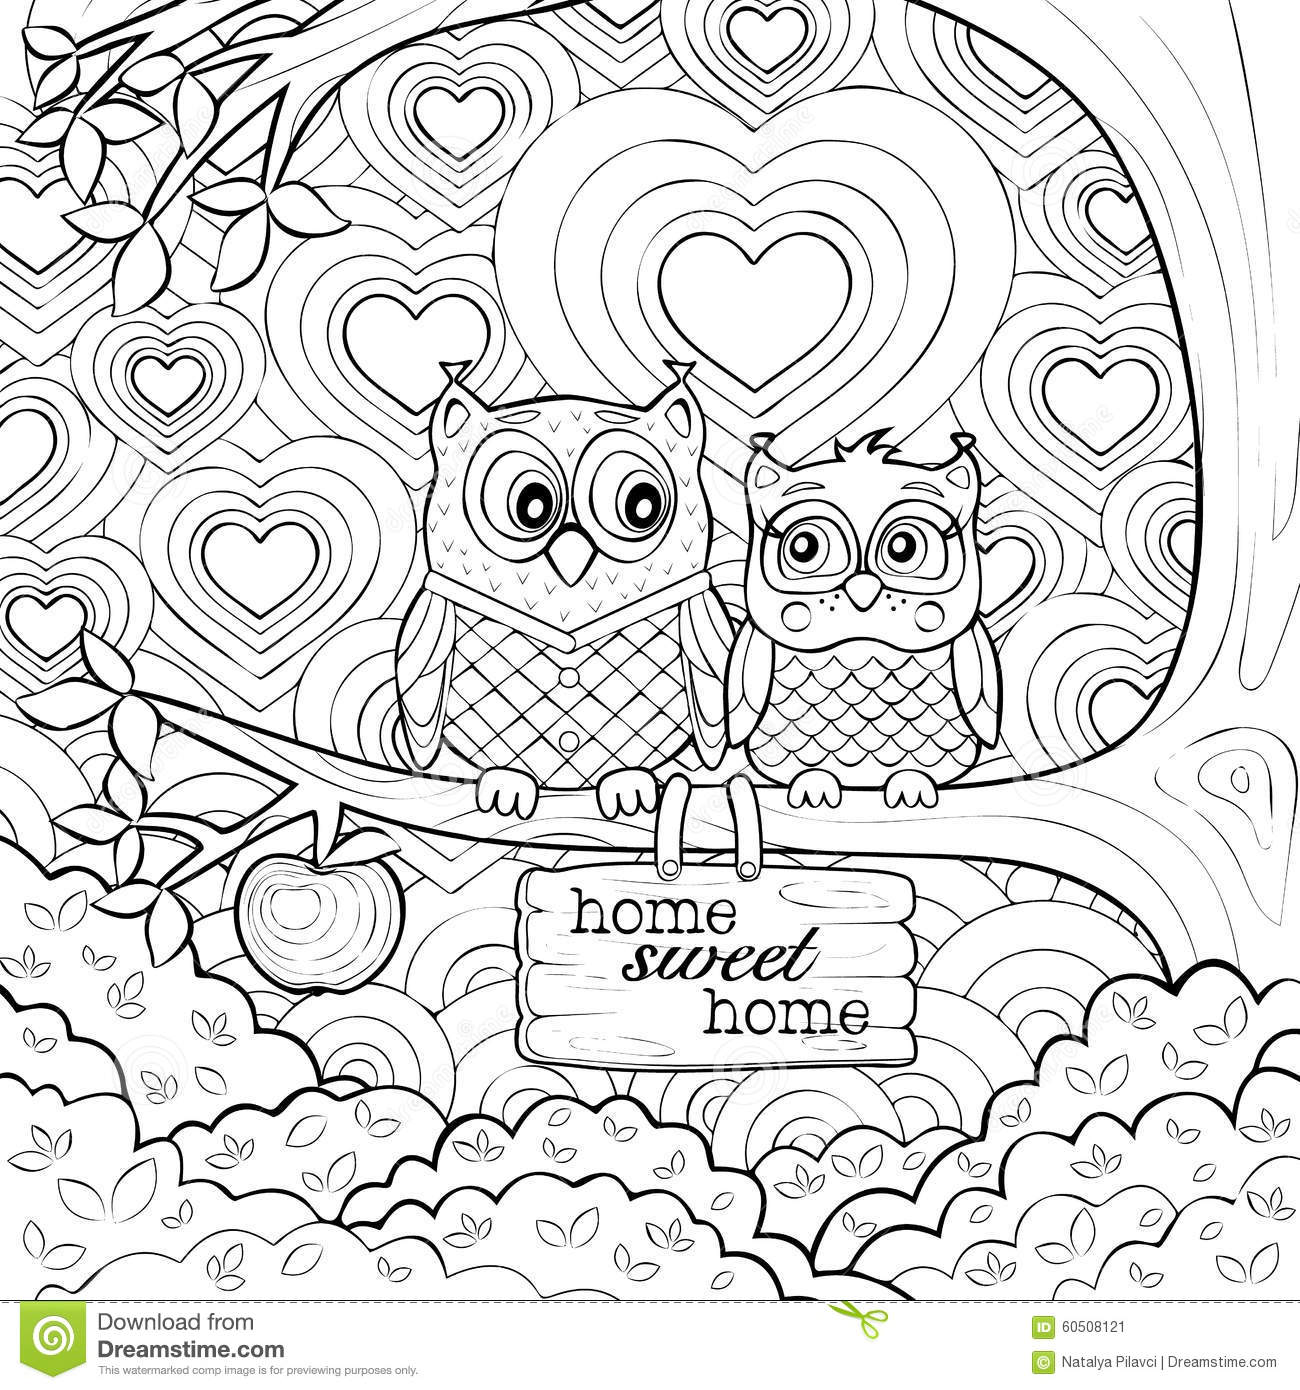 cute owls art therapy coloring page - Art Therapy Coloring Pages